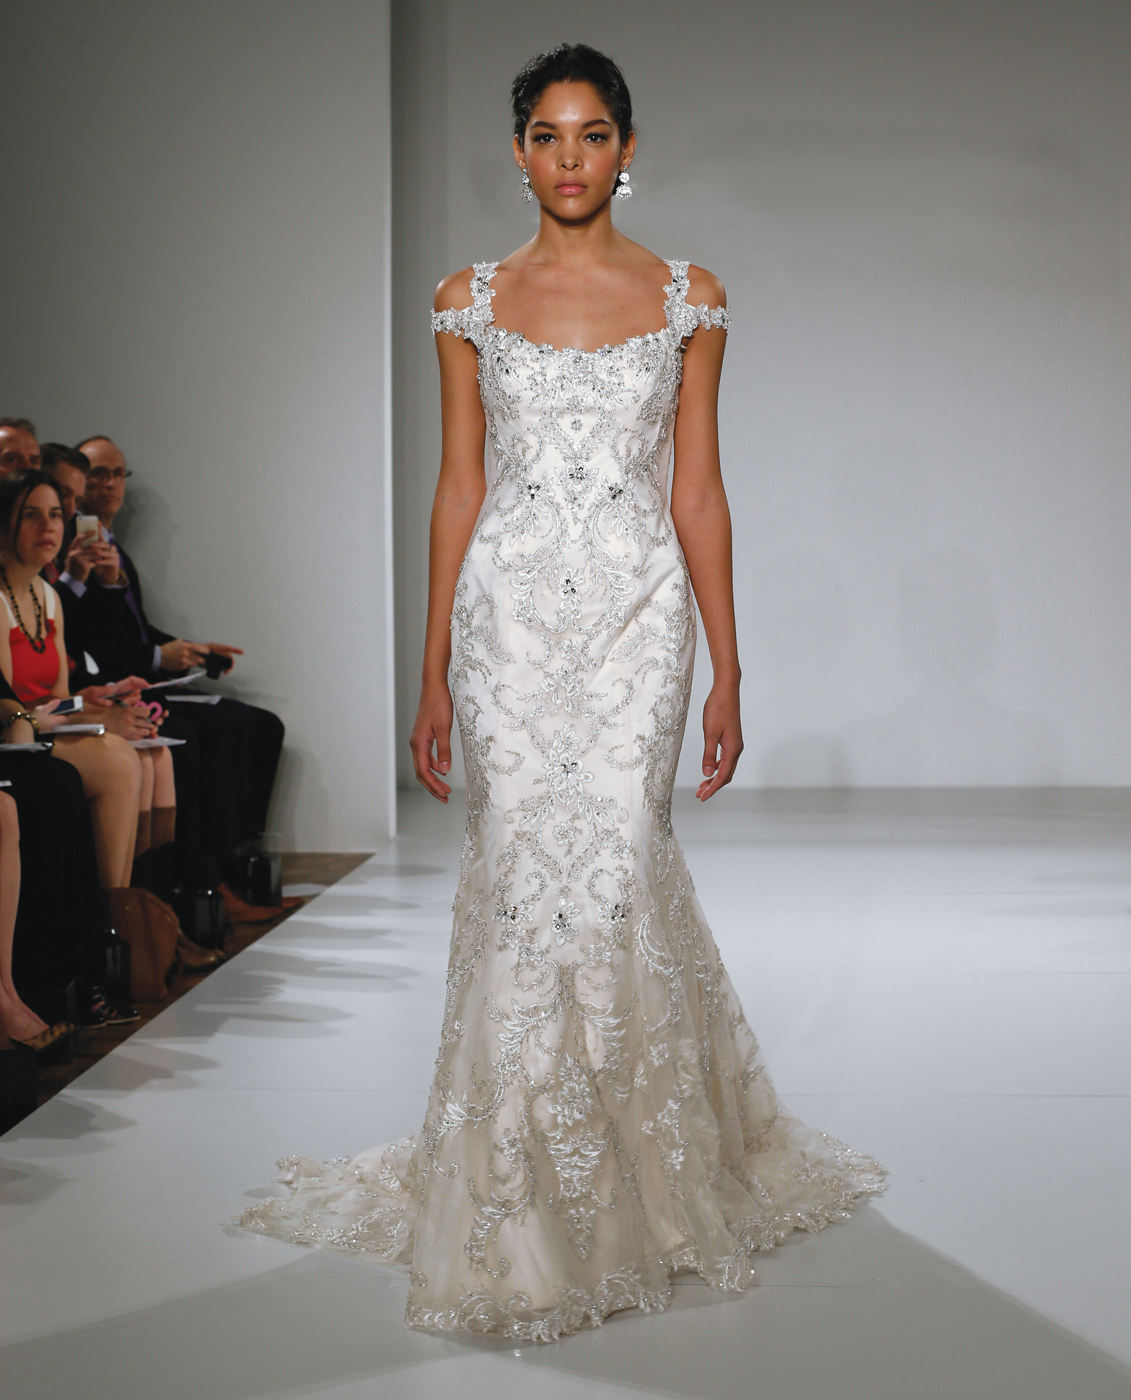 Sottero & Midgley Off-the-Shoulder Trumpet Wedding Gown: www.manhattanbride.com/gown/sottero-midgley-ettiene